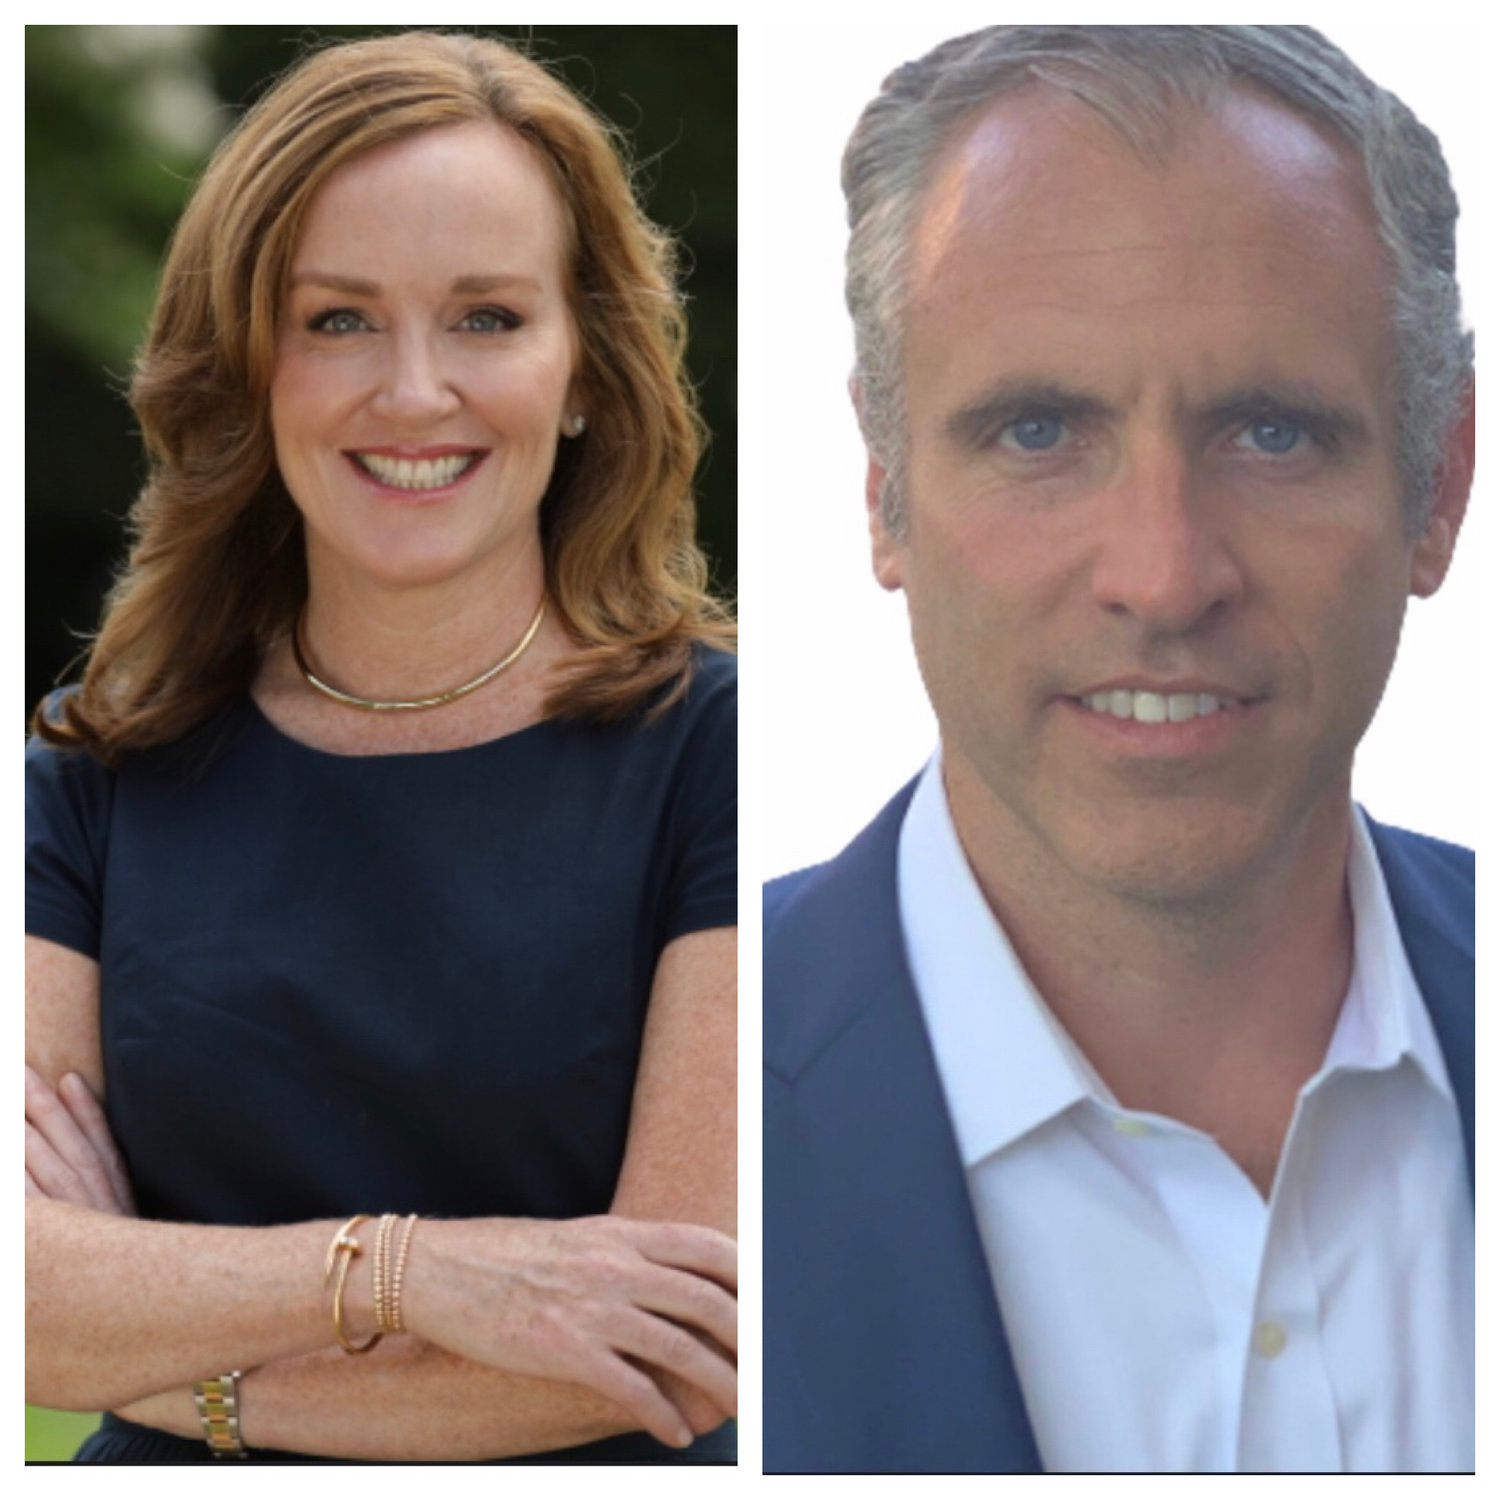 Kathleen Rice and Douglas Tuman are vying in the Fourth Congressional District.